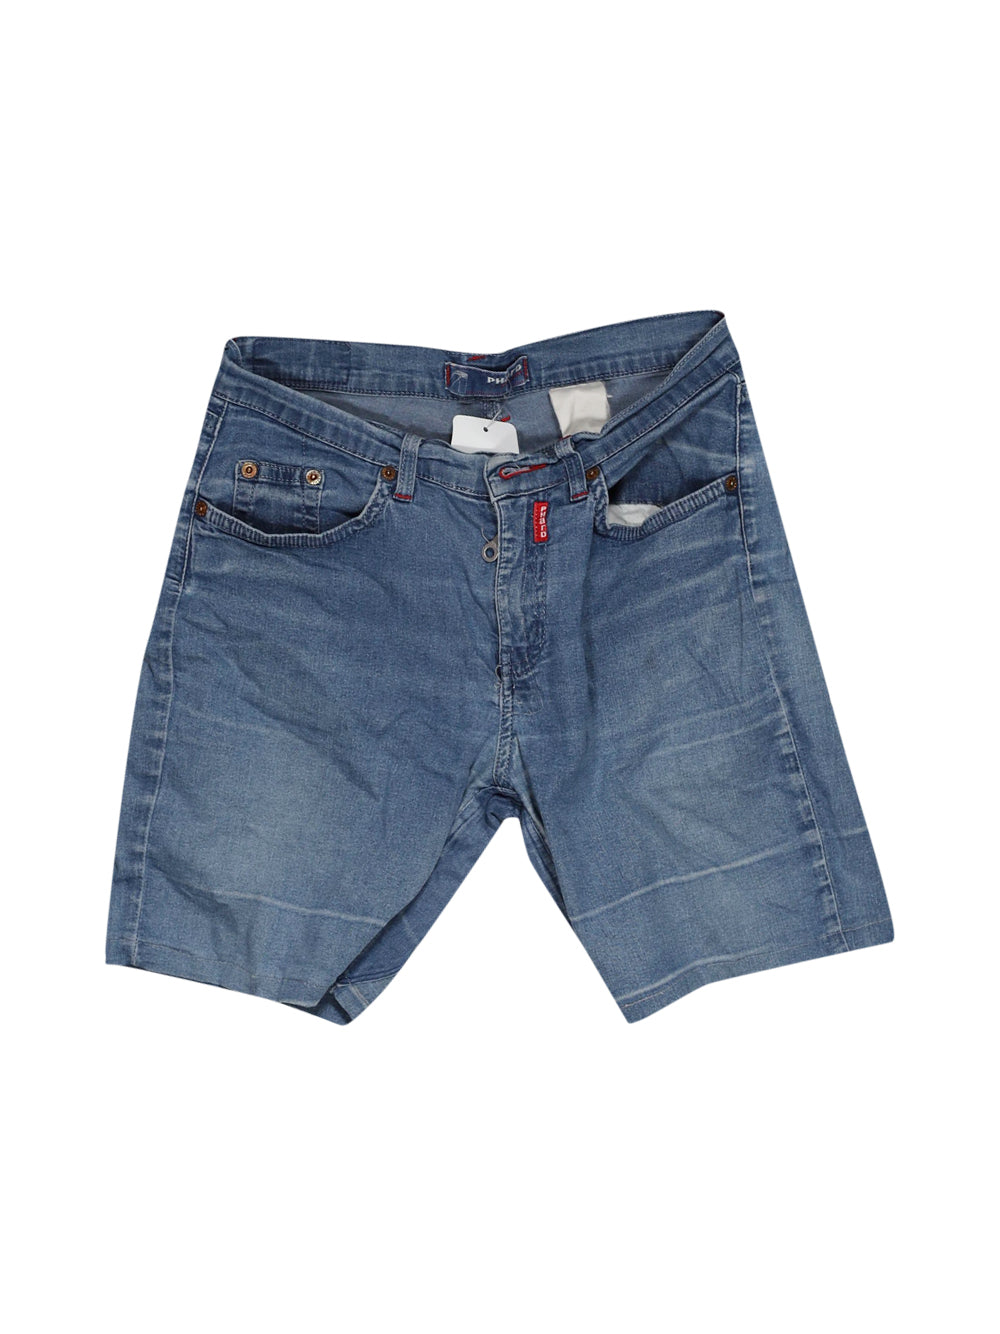 Front photo of Preloved Phard Blue Woman's shorts - size 8/S